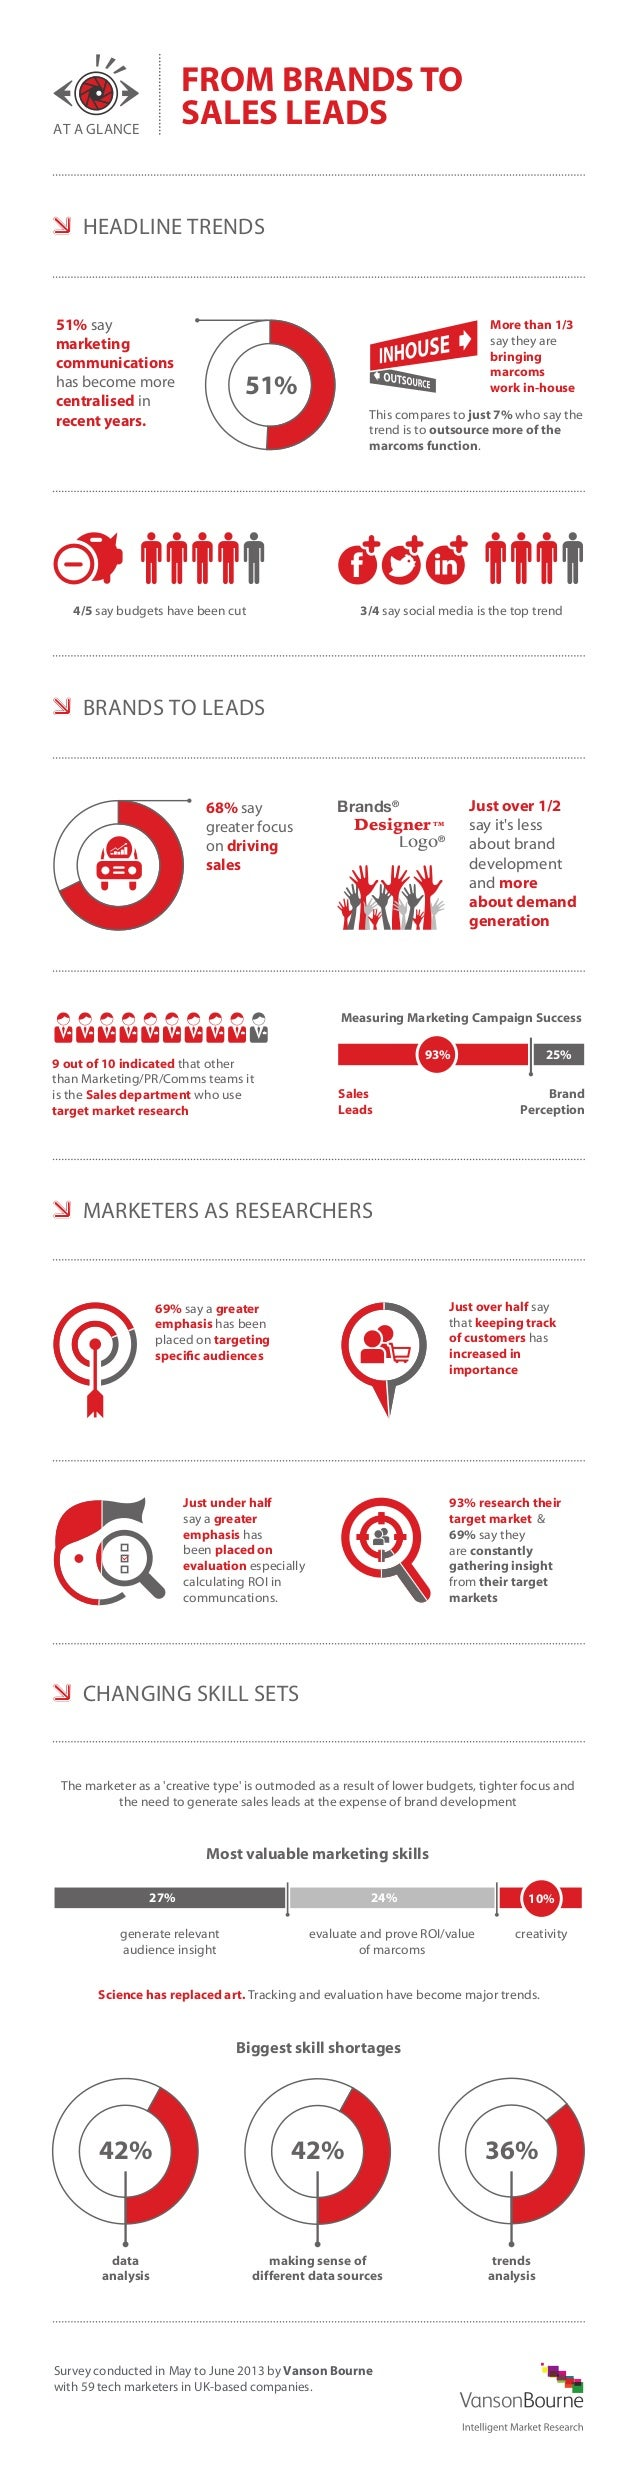 FROM BRANDS TO SALES LEADS  AT A GLANCE  HEADLINE TRENDS  51% say marketing communications has become more centralised in ...